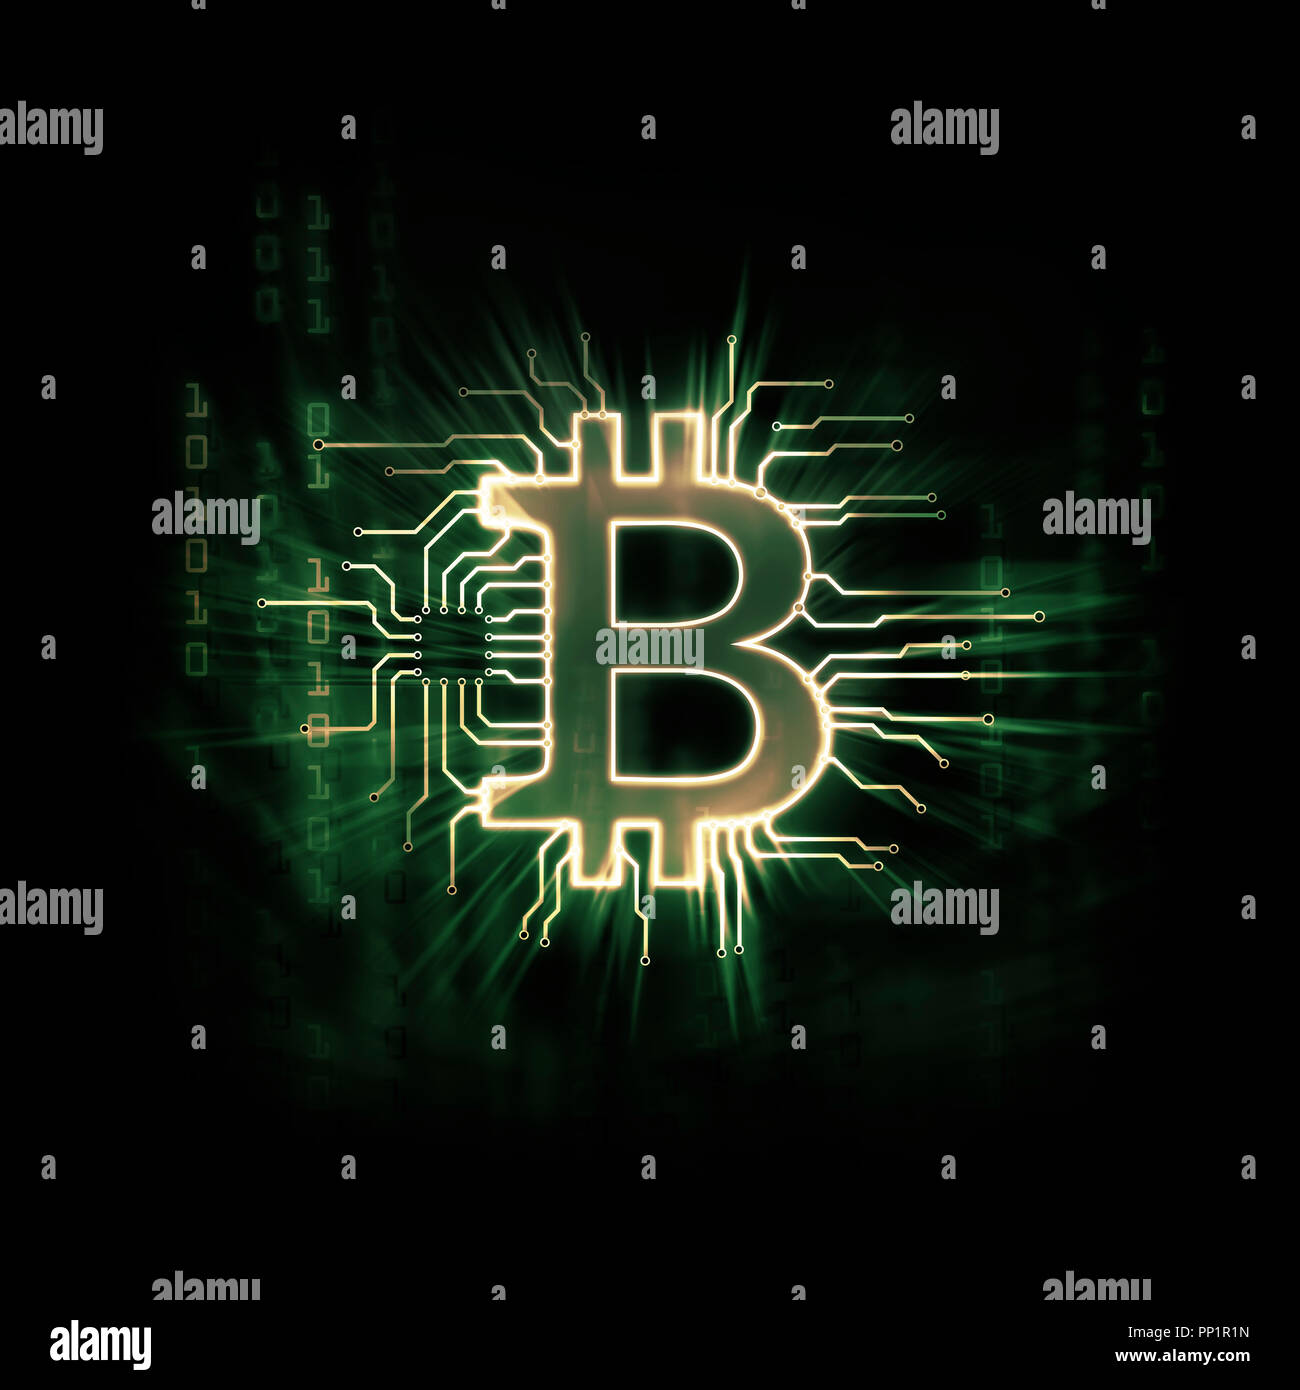 Glowing green Bitcoin ₿ cryptocurrency, digital decentralized currency symbol, conceptual illustration of a bitcoin connected to a blockchain network  Stock Photo